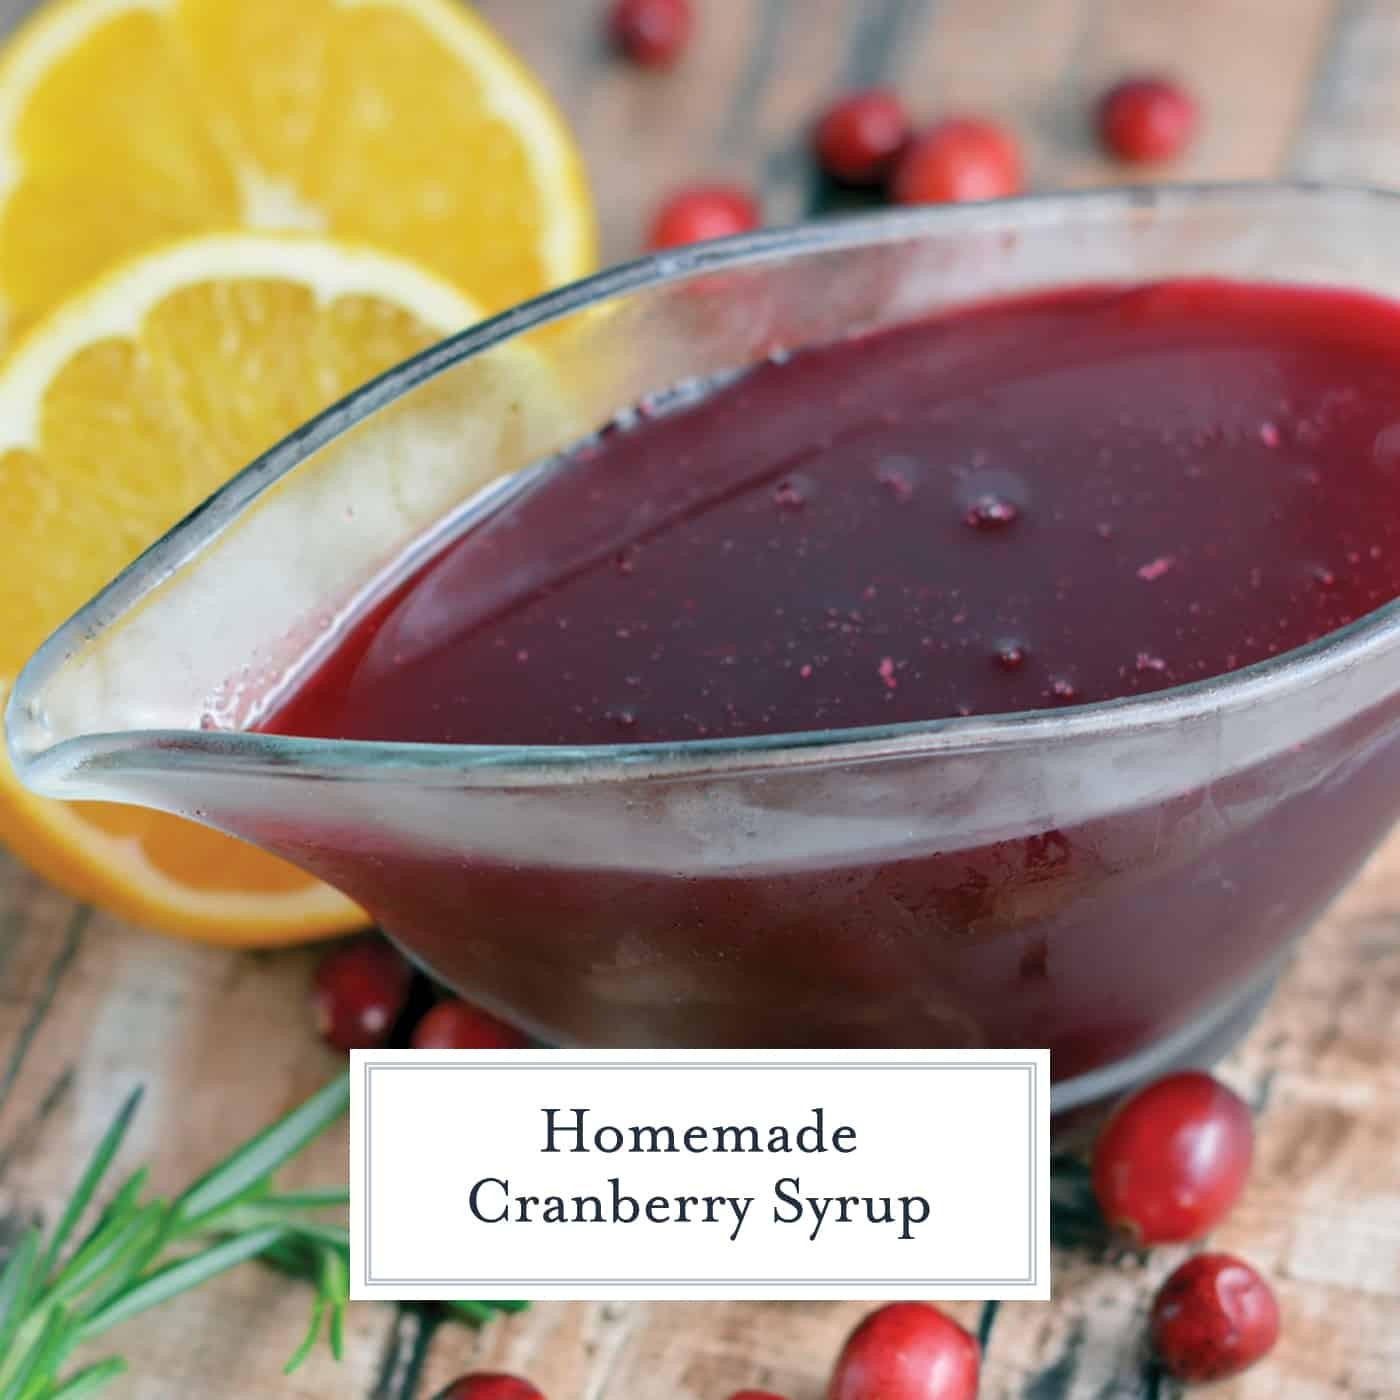 Ruby Red Cranberry Syrup is a tartly sweet flavored syrup that will wake up your taste buds! Serve for breakfast or dessert! #cranberrysyrup #homemadesyrup #flavoredsyrup www.savoryexperiments.com